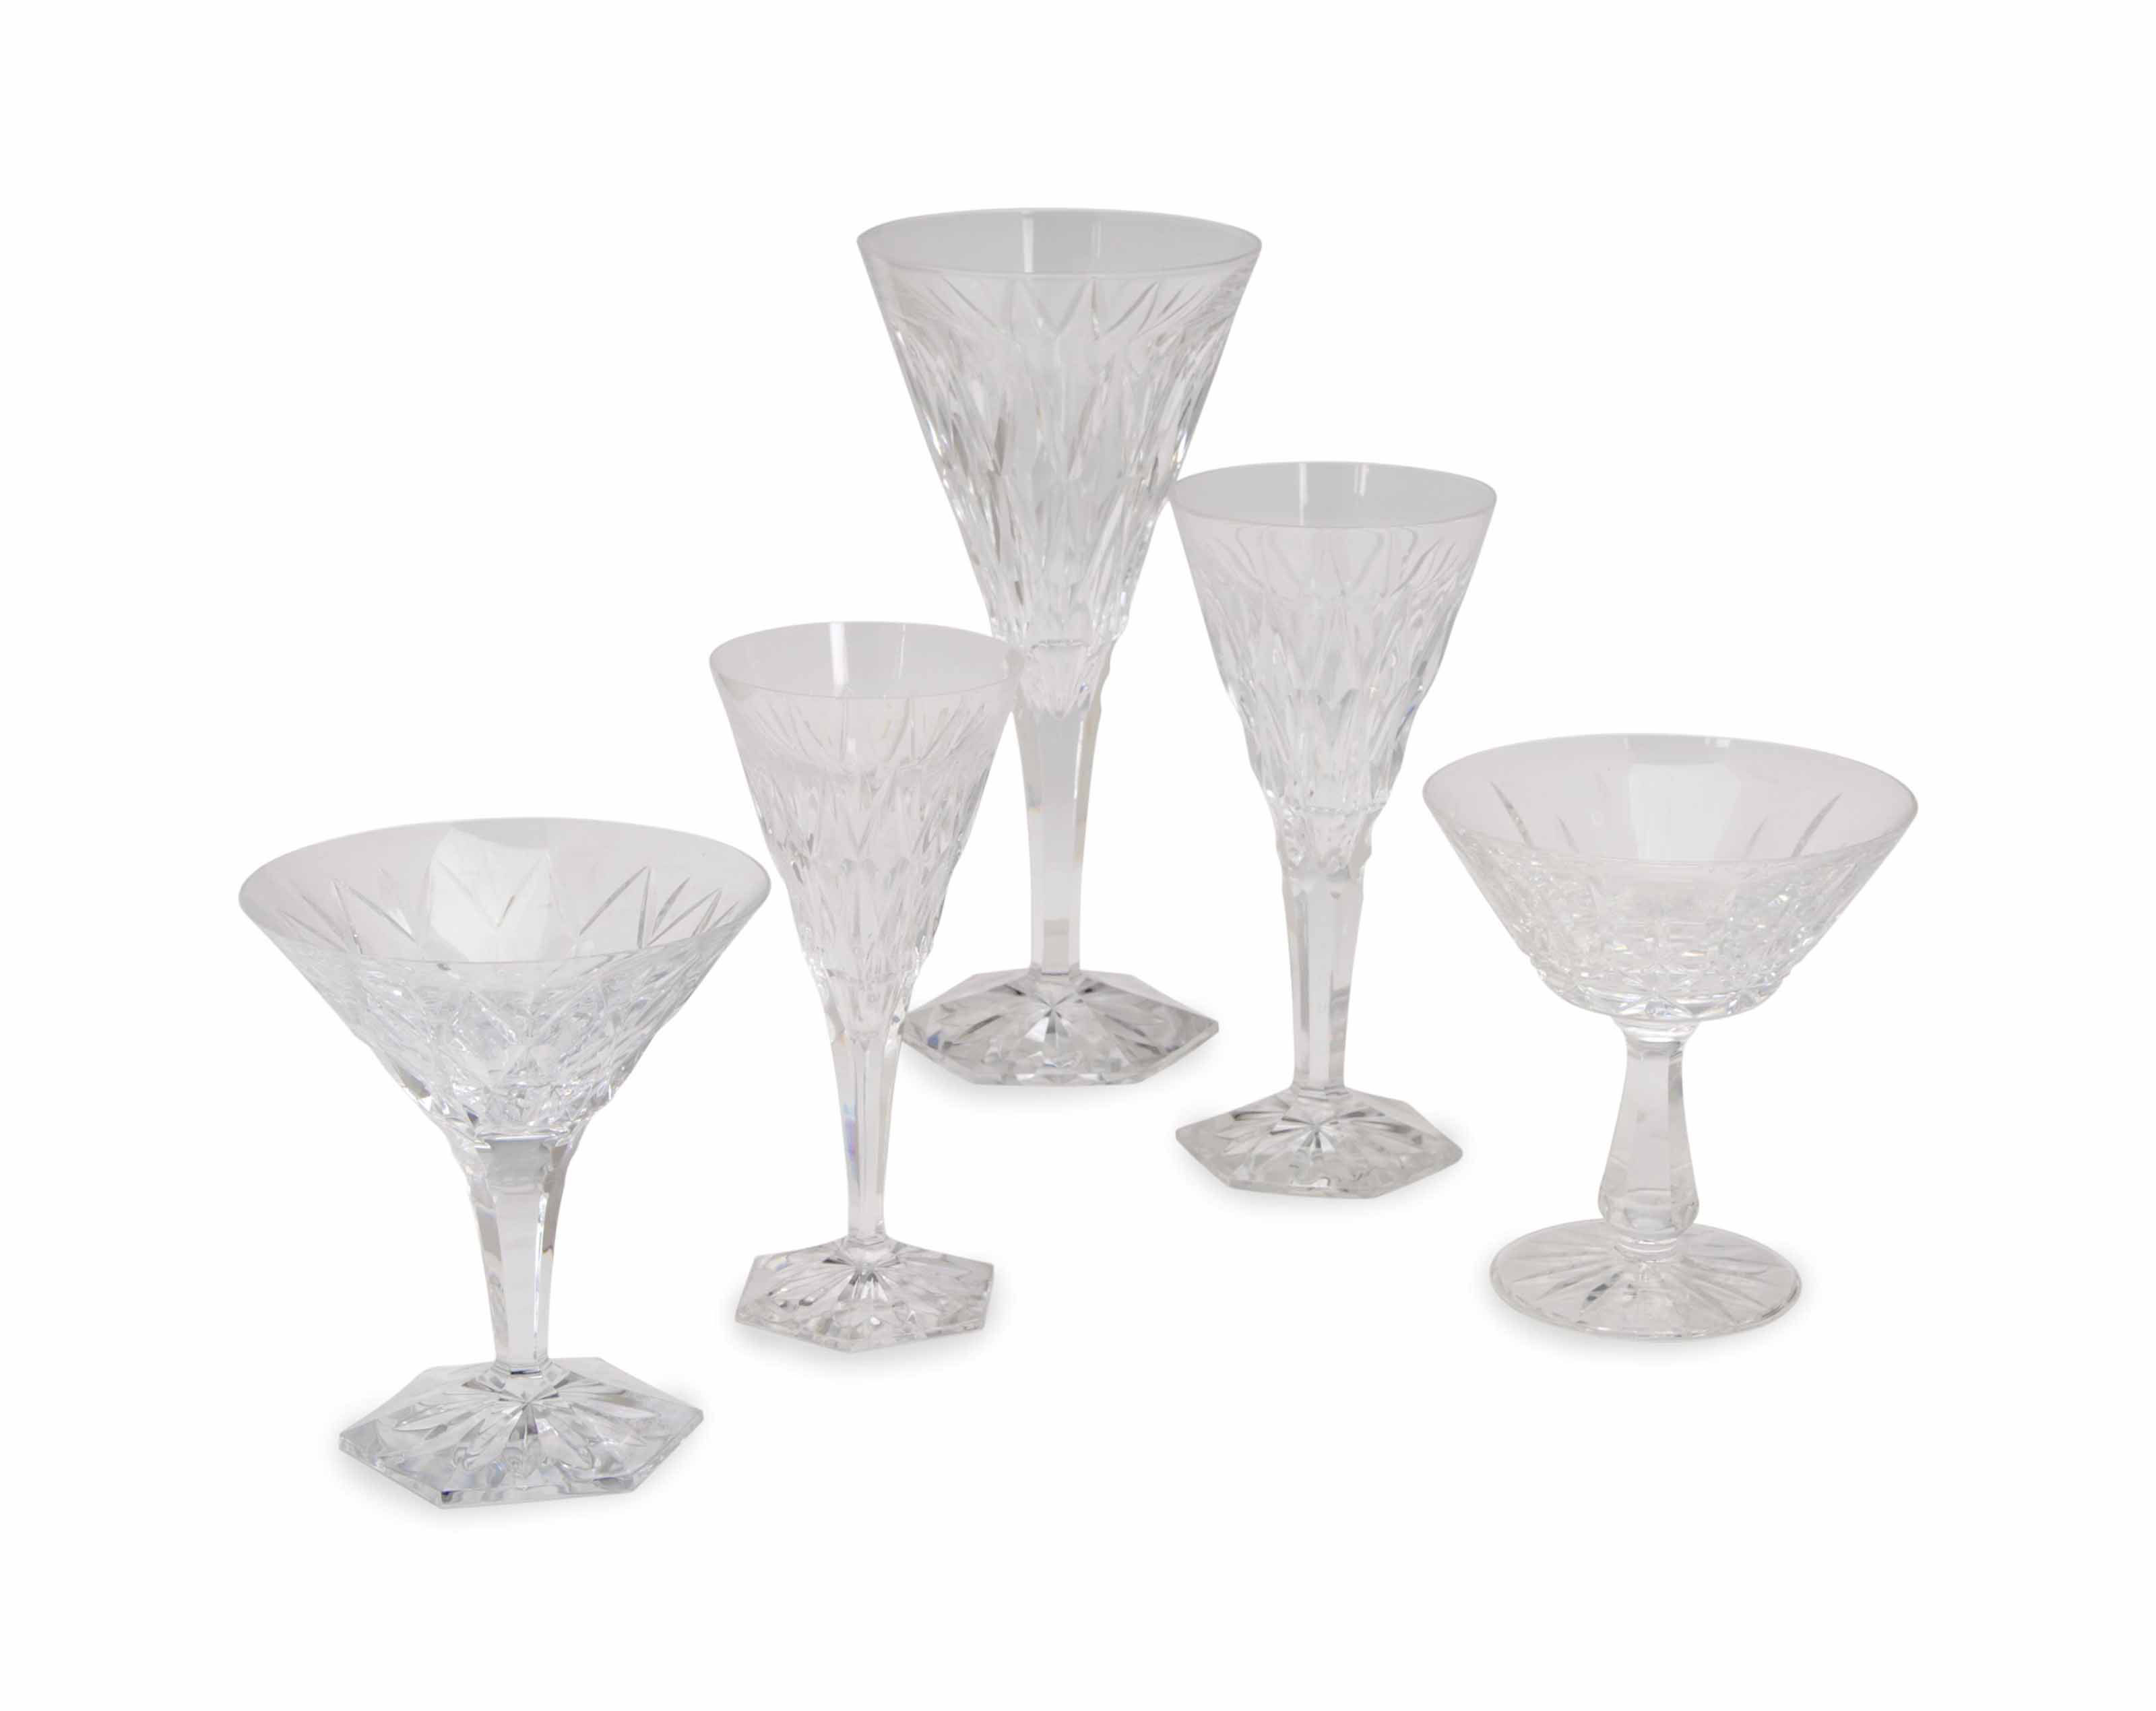 A FRENCH CLEAR GLASS PART STEMWARE SERVICE,